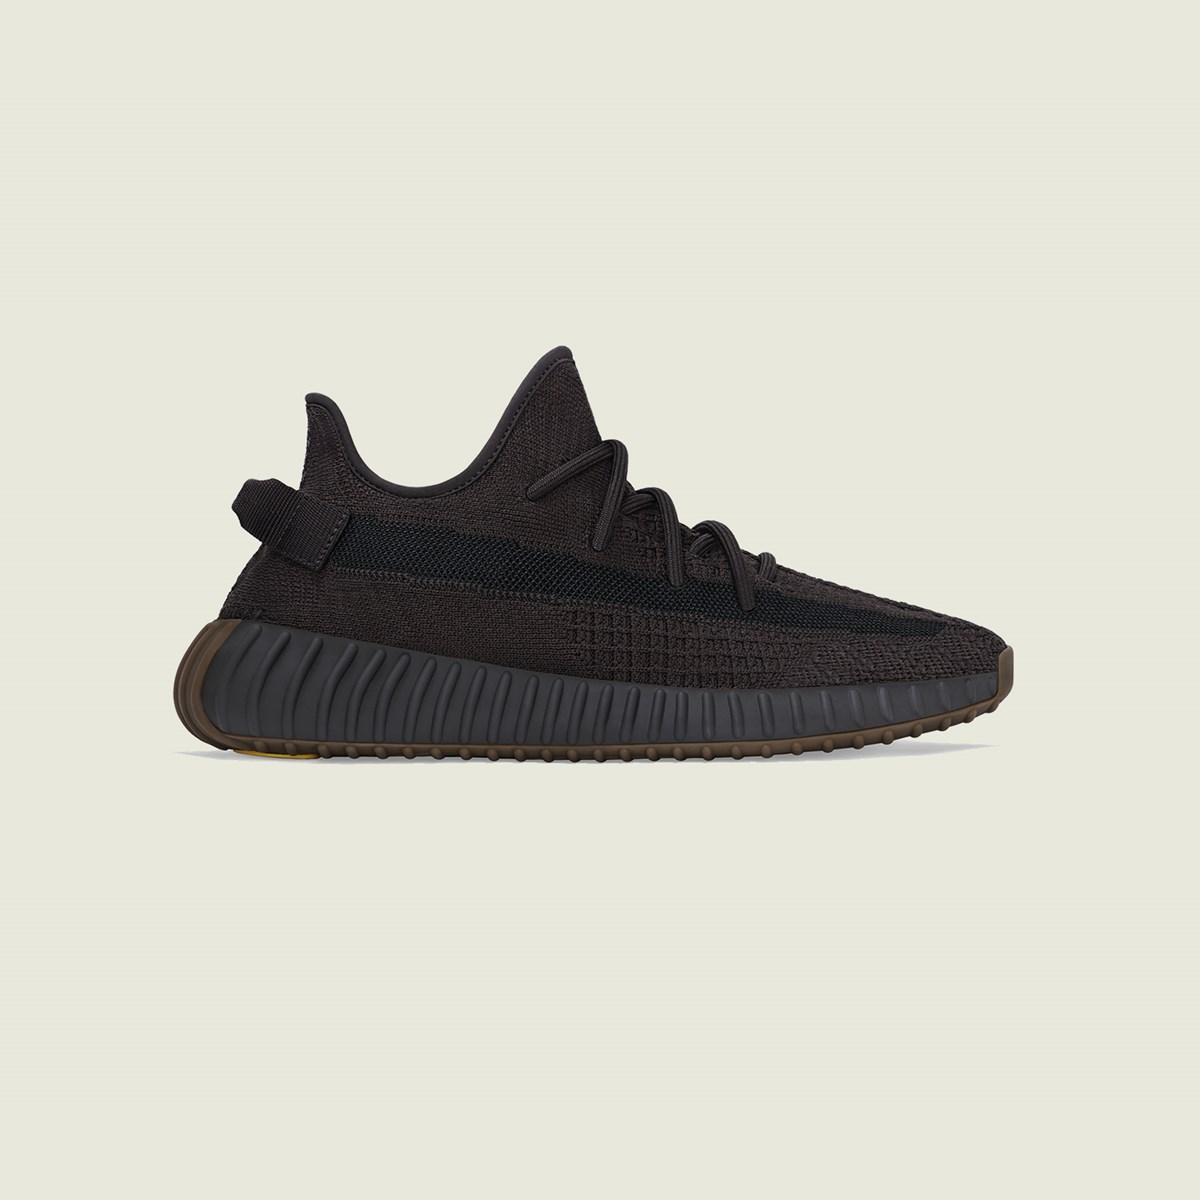 Yeezy Boost 350 V2 FY2903